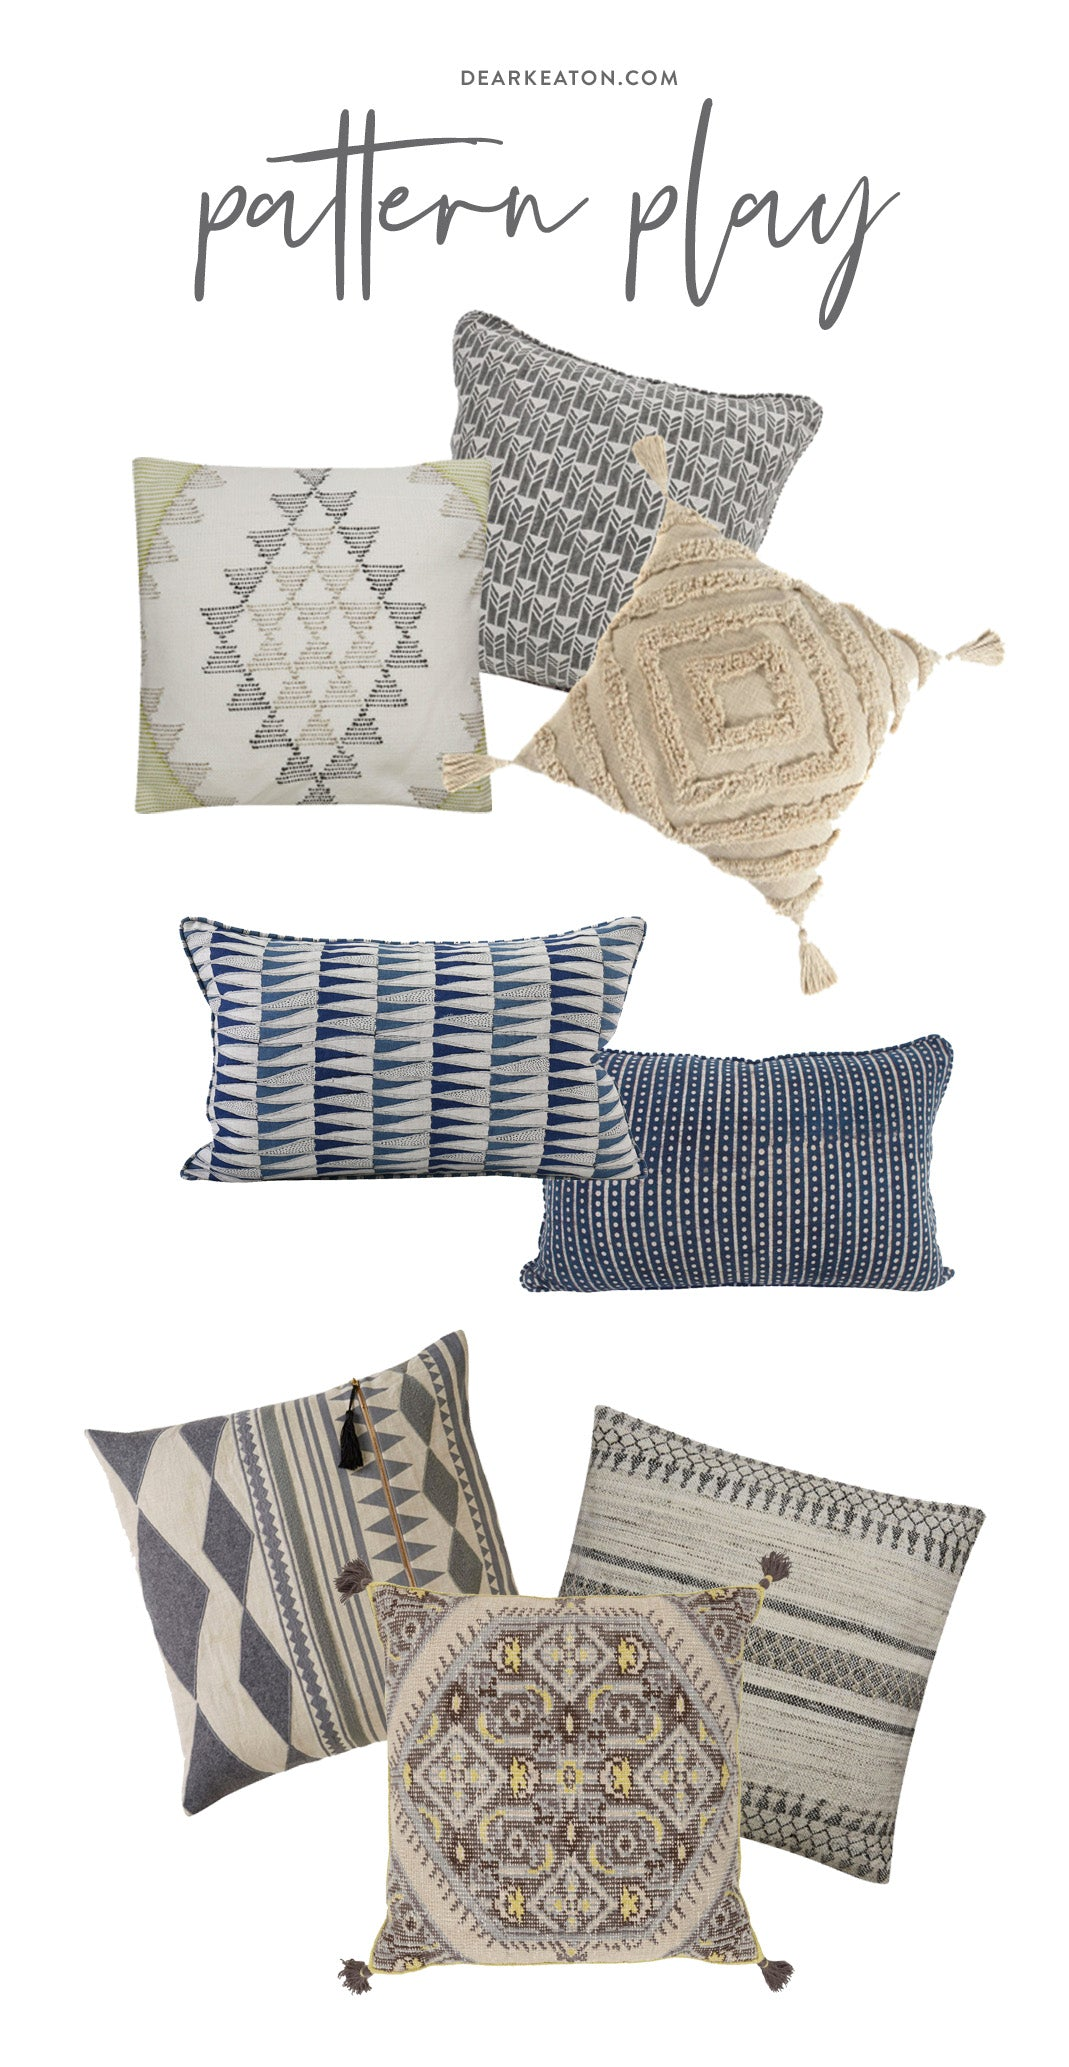 How to pattern play with pillows | Dear Keaton